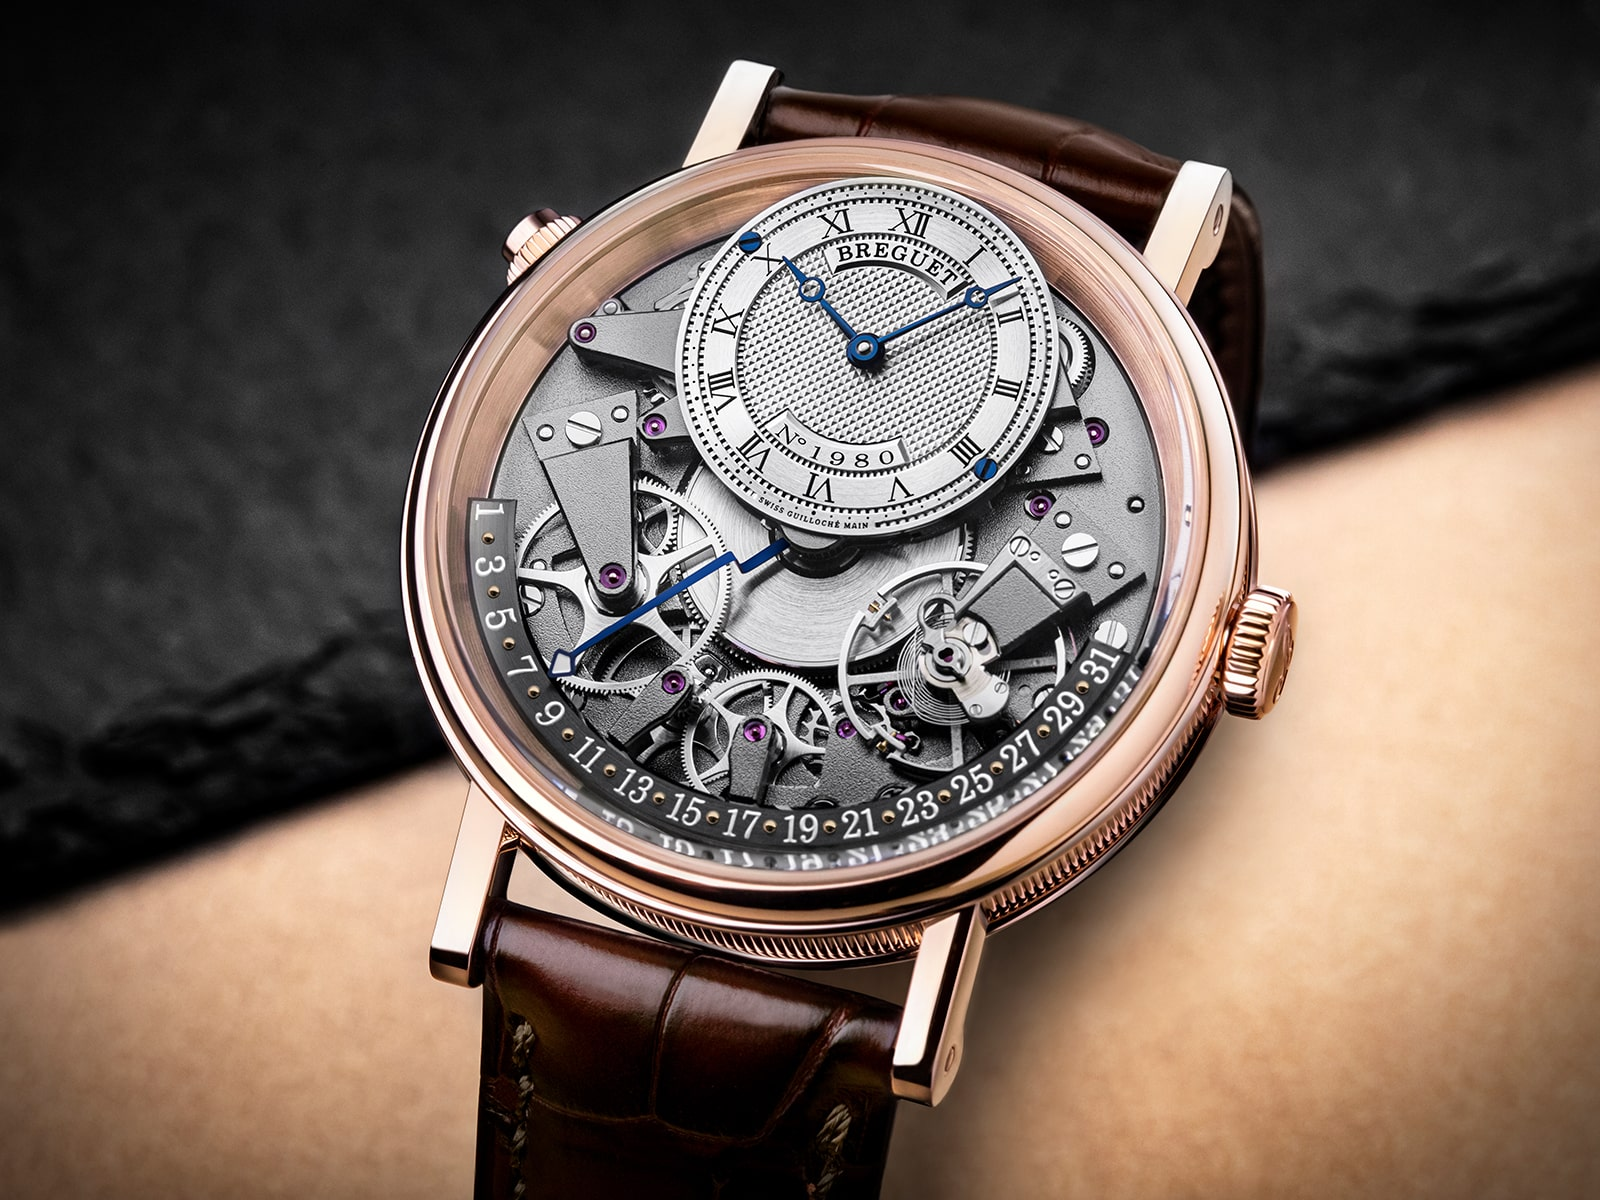 7597br-g1-9wu-breguet-tradition-quantieme-retrograde-7597-rose-gold-2.jpg